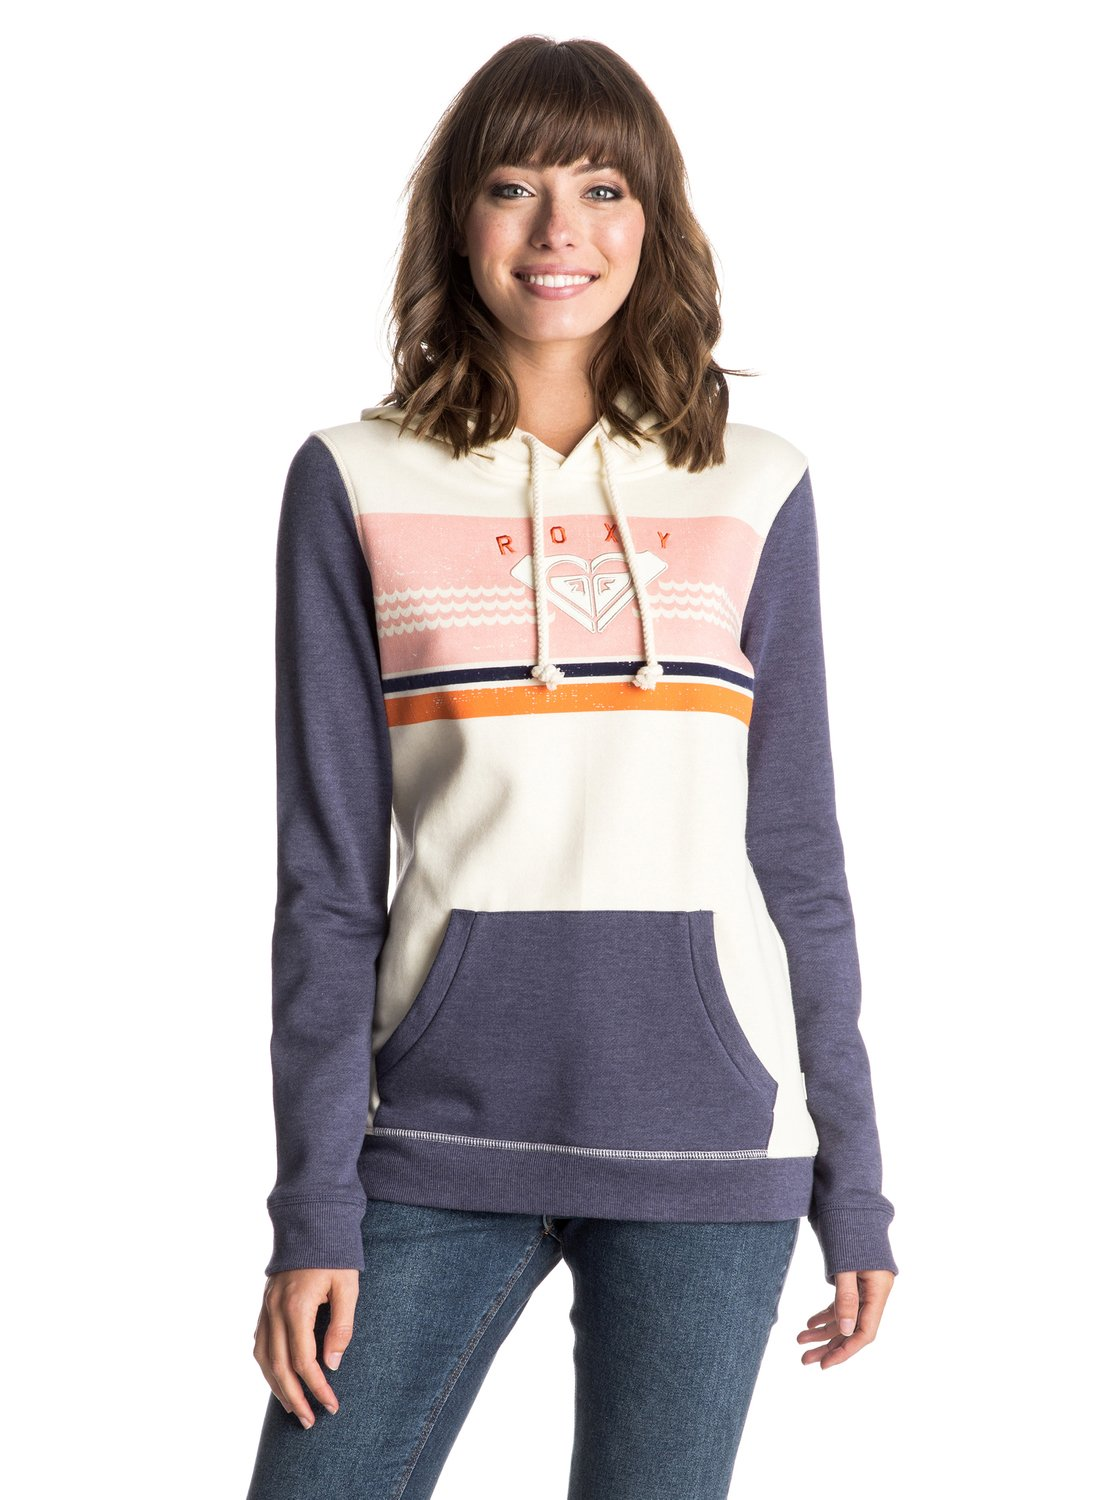 That Boy - Sweatshirt - Roxy<br>